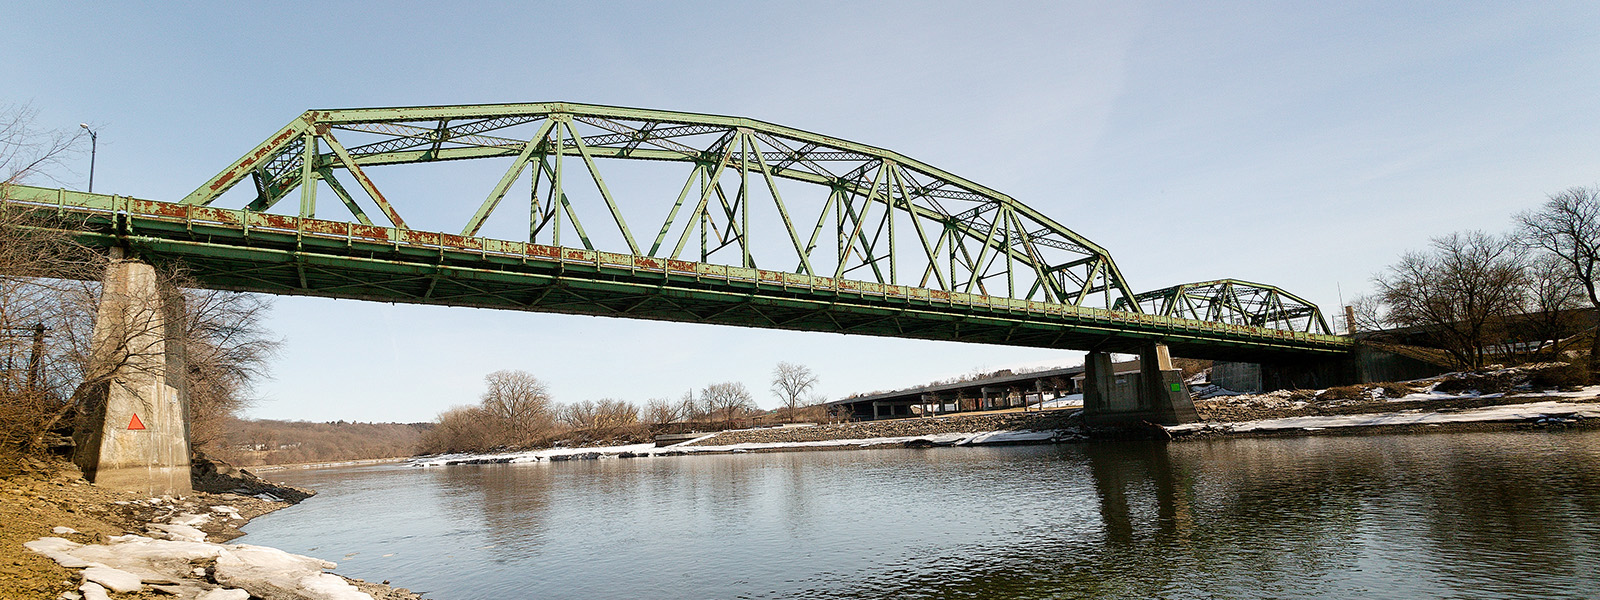 The bridge of Palatine Bridge